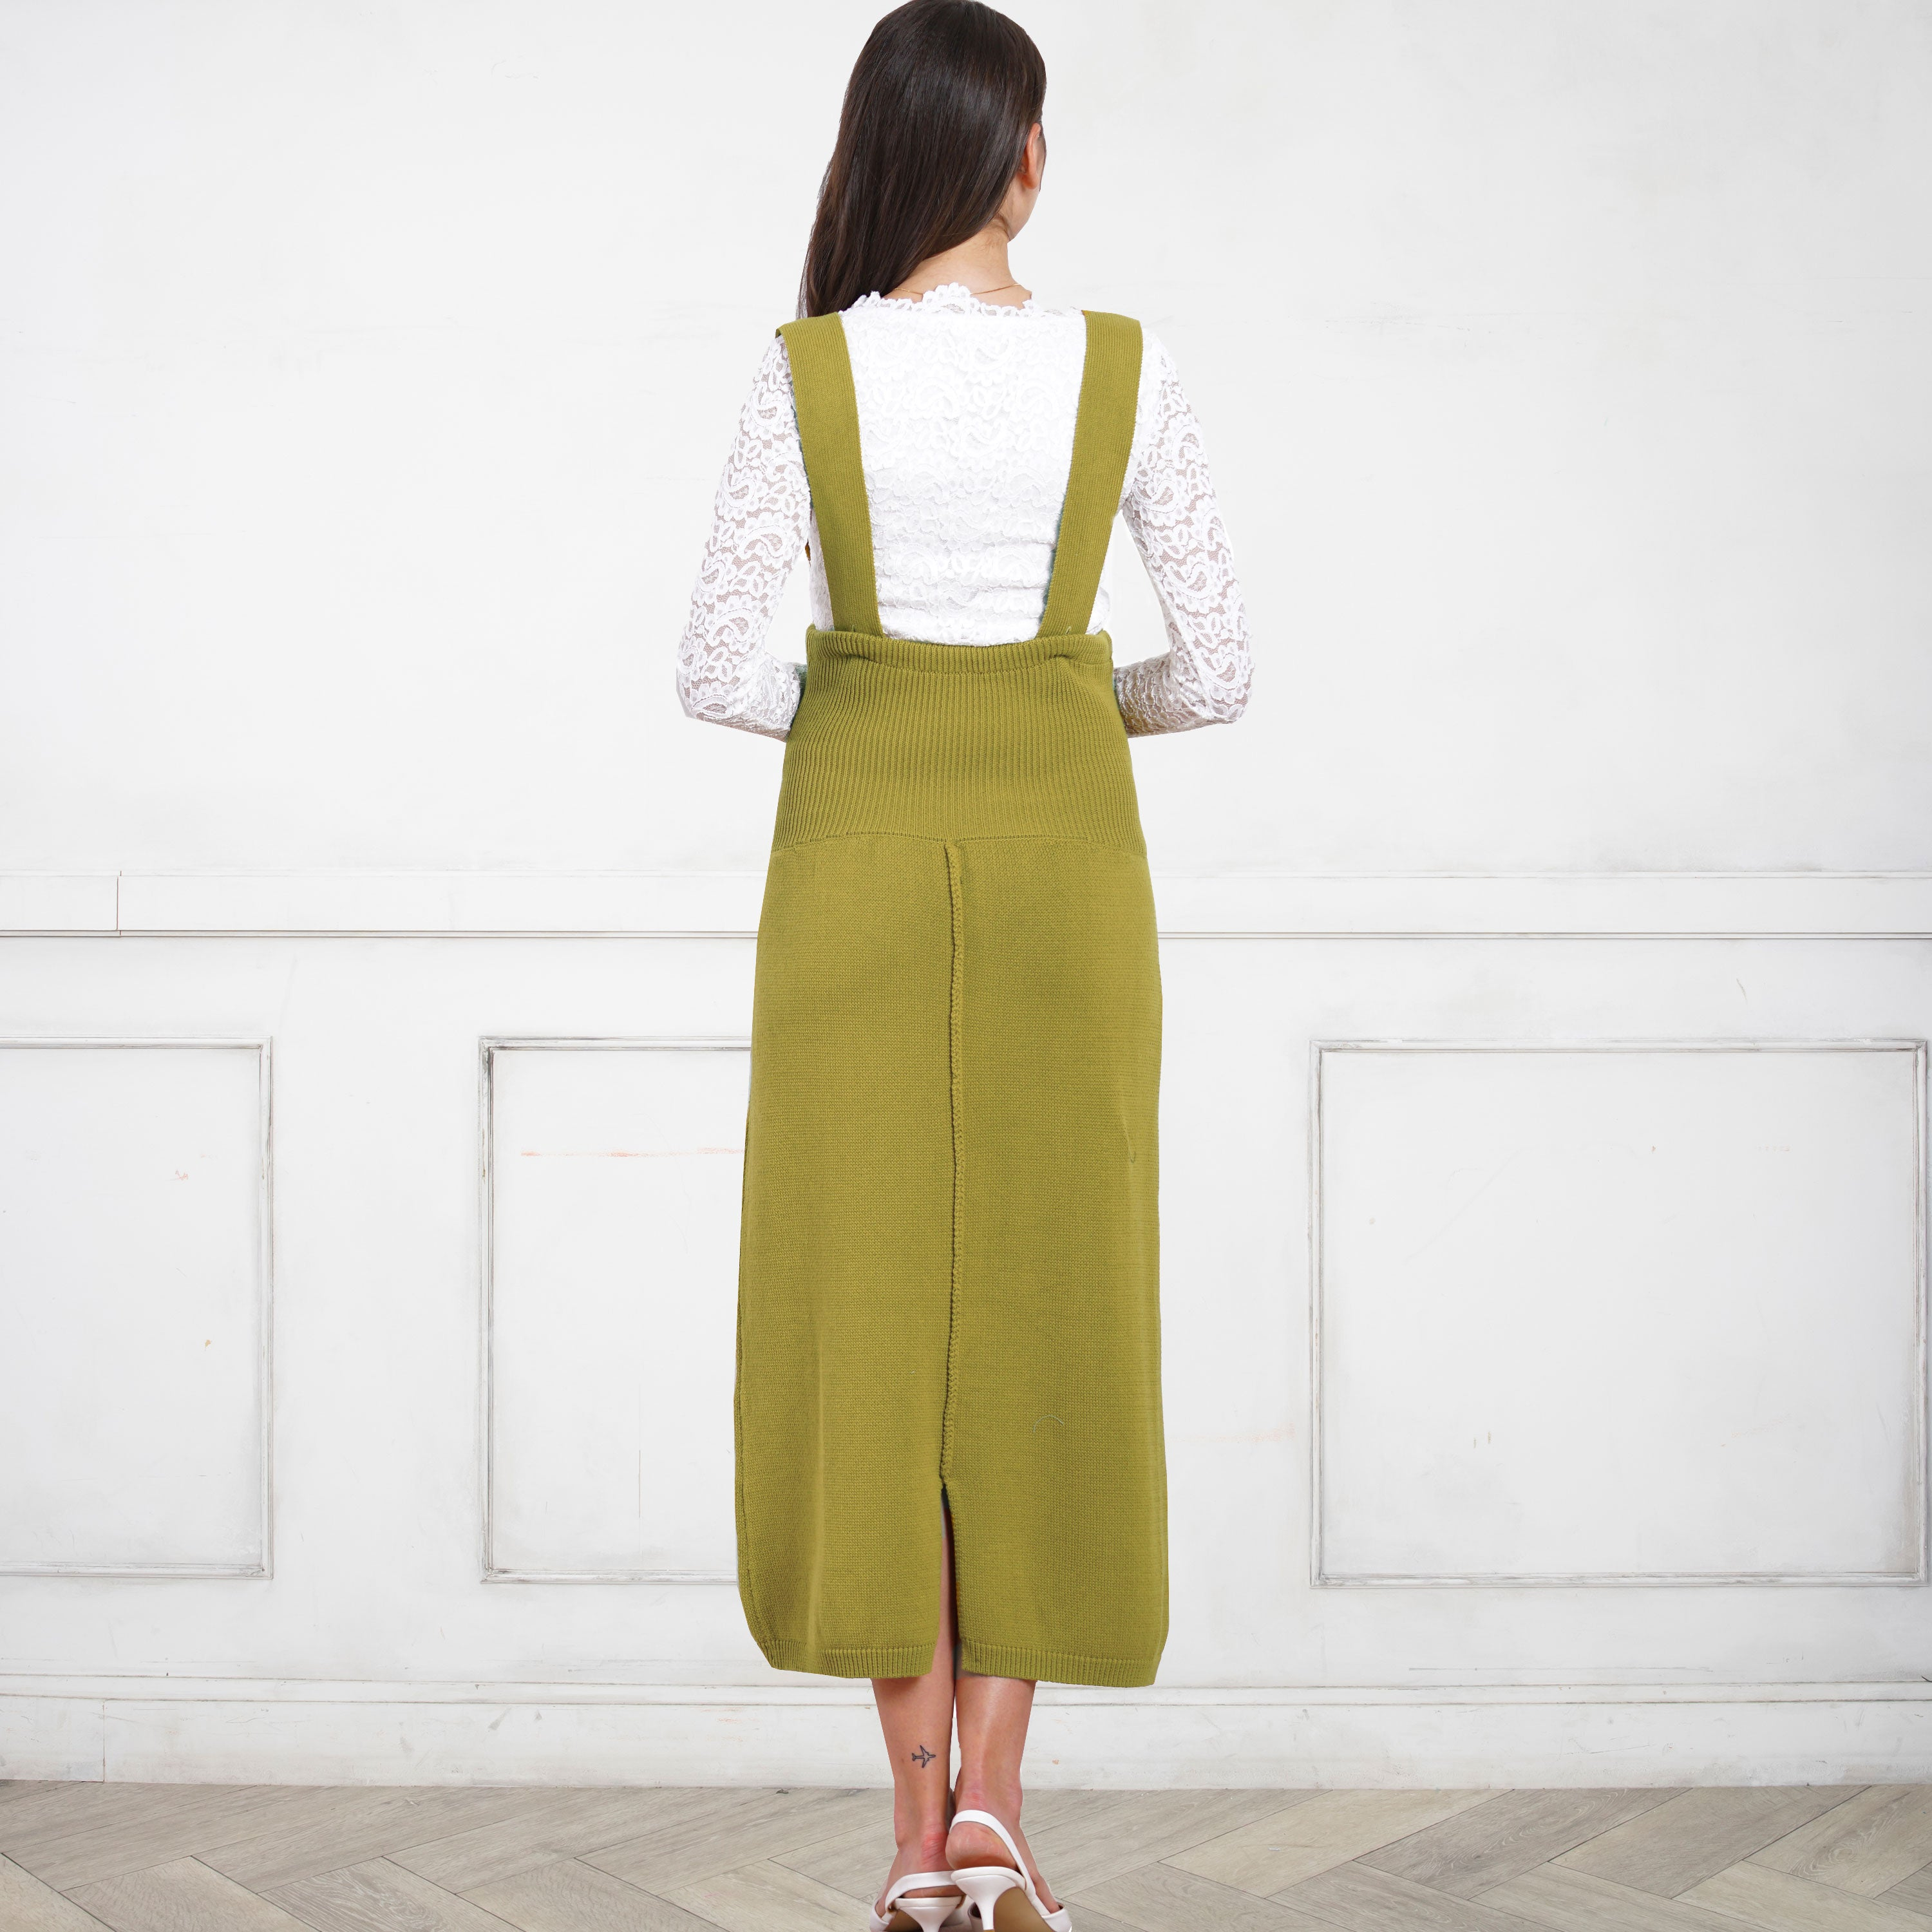 HIGH WAIST Maternity/ Pregnancy 100% Organic Cotton Knit Maxi Skirt With Suspenders